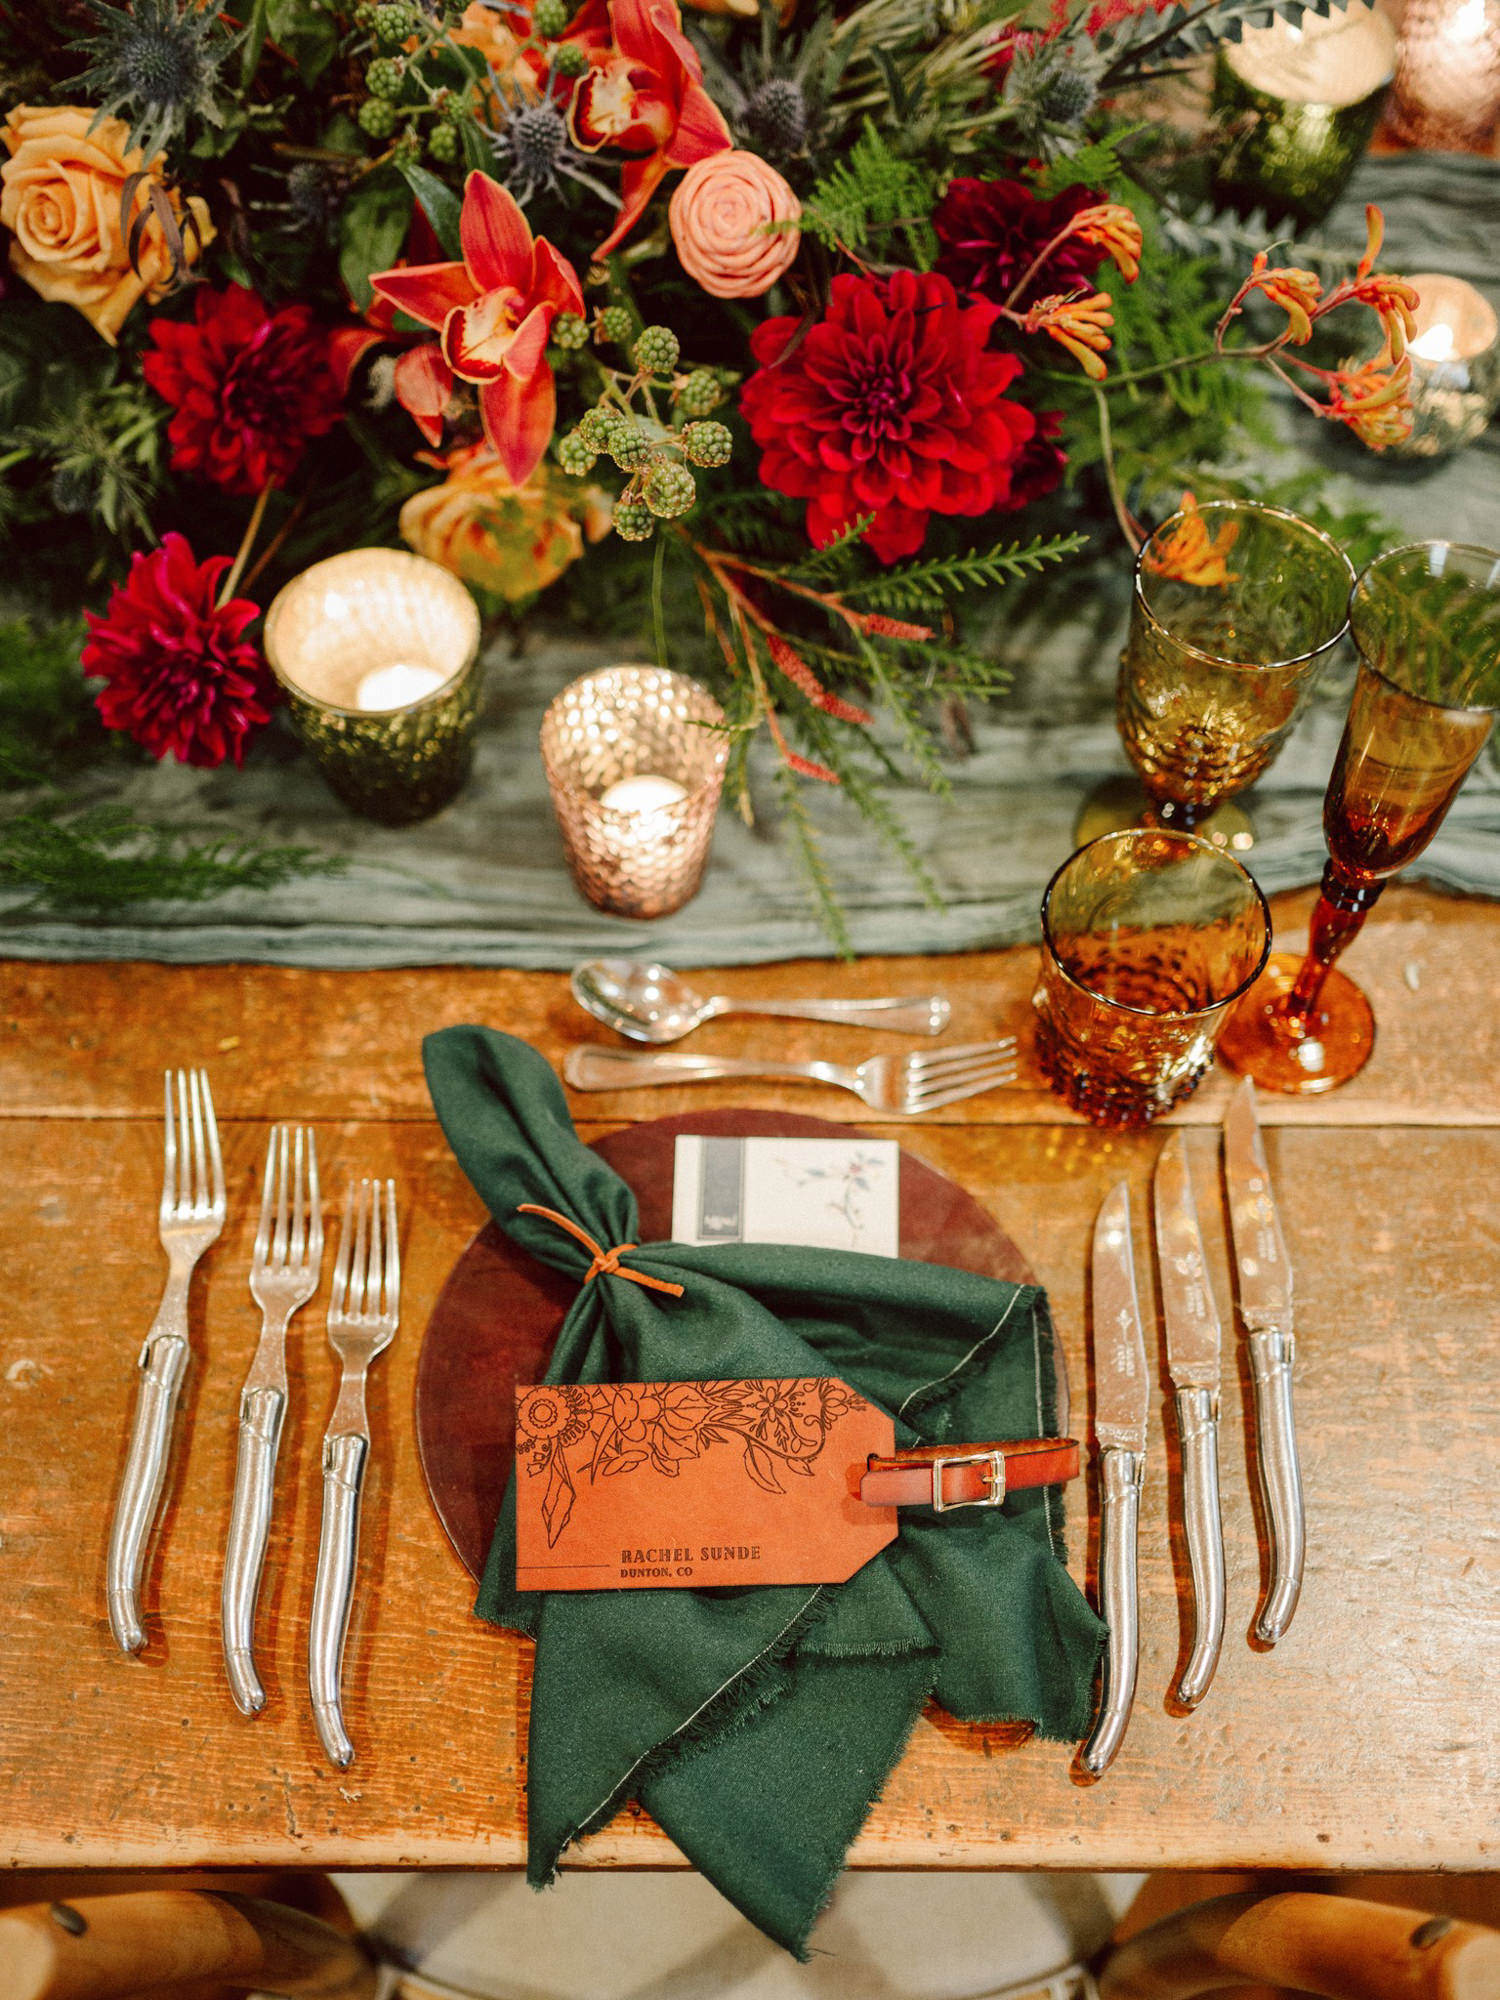 Rustic table setting with green serviettes  and amber glass - Photo by Benj Haisch